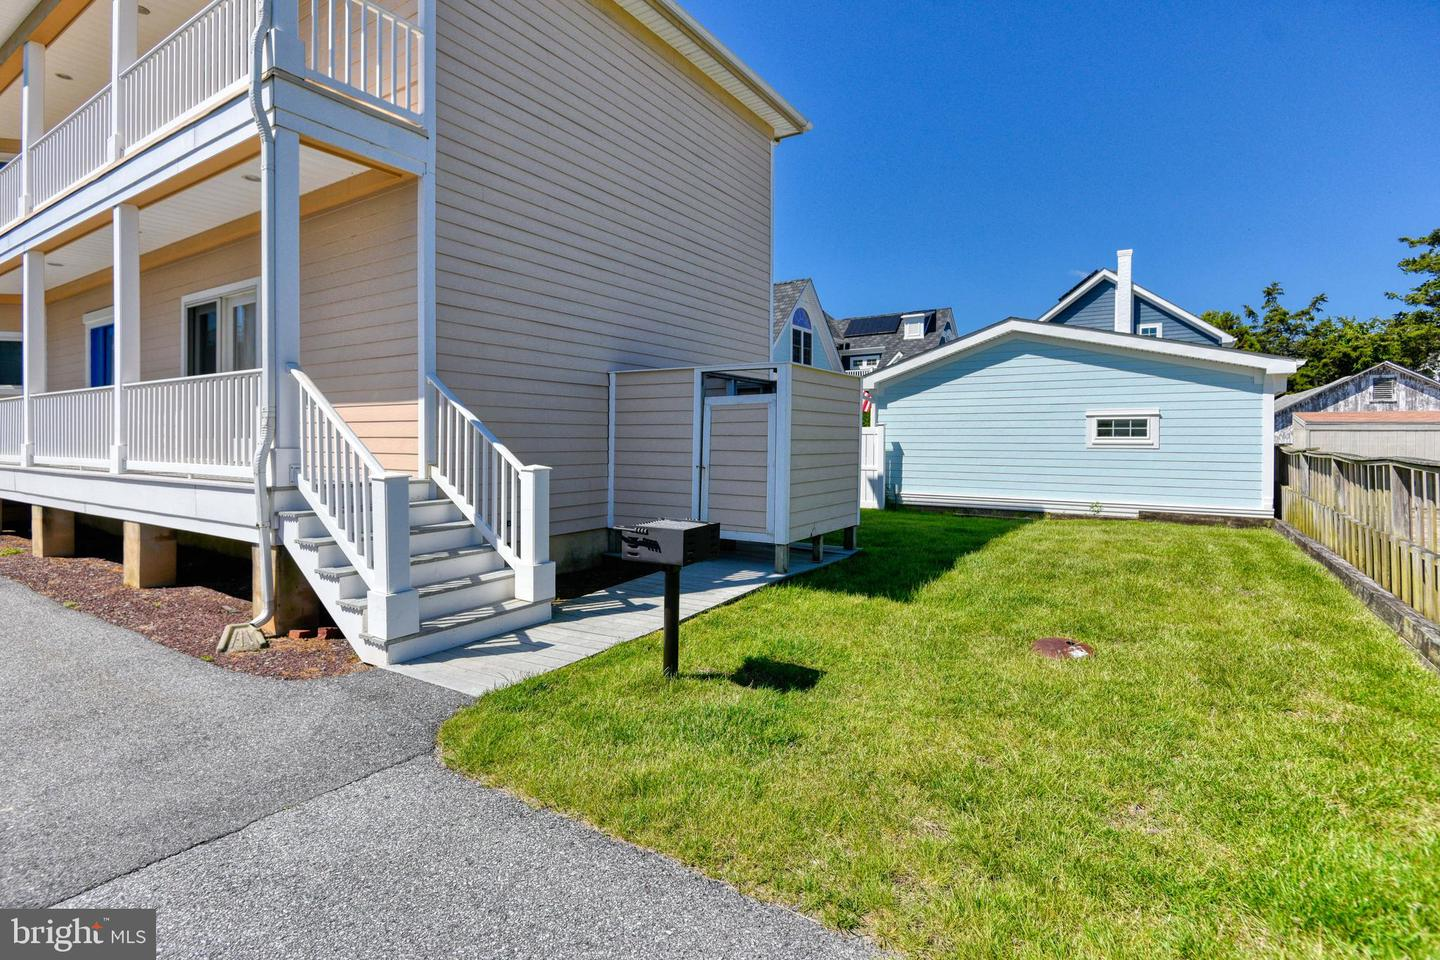 DESU140752-301729566312-2019-05-20-15-11-27 7 Olive Ave | Rehoboth Beach, DE Real Estate For Sale | MLS# Desu140752  - 1st Choice Properties